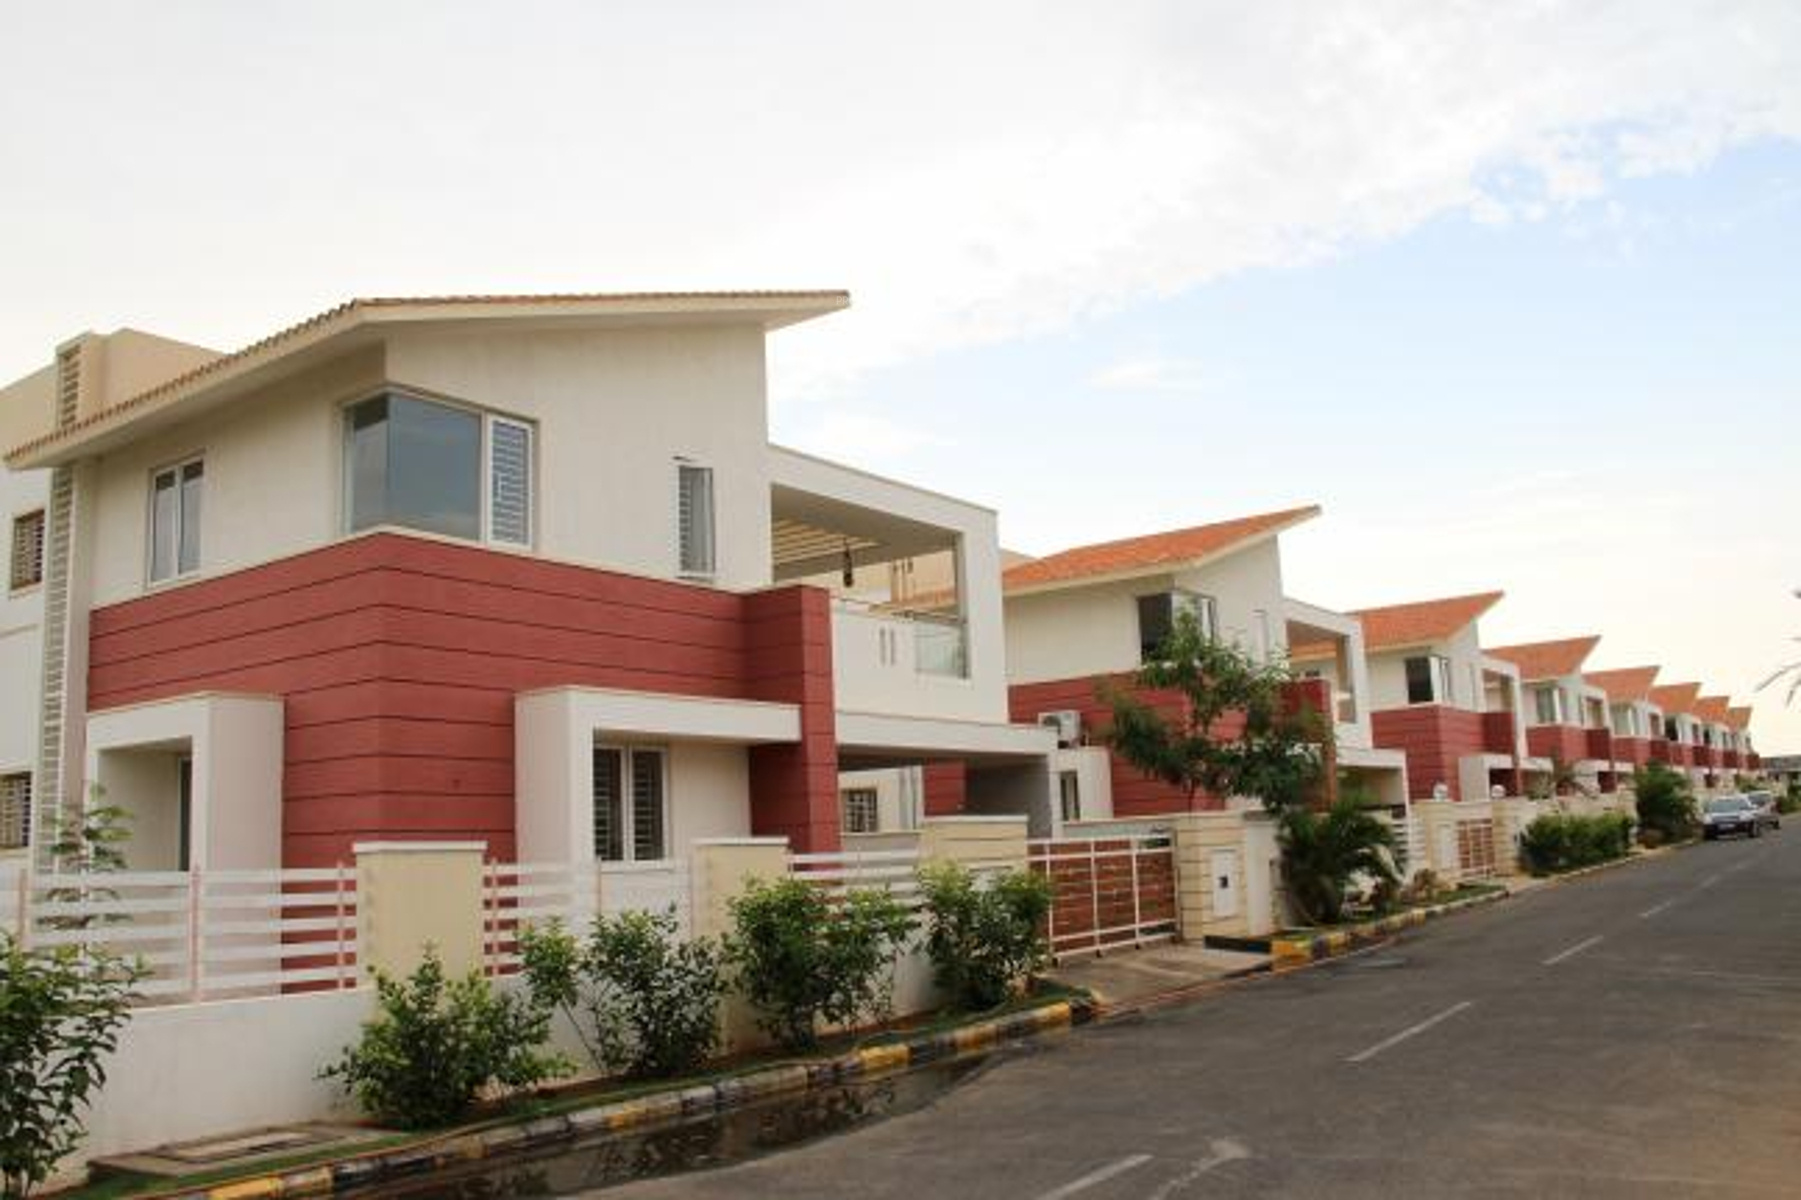 Sreevatsa global village villas in saravanampatti for Villas apartments